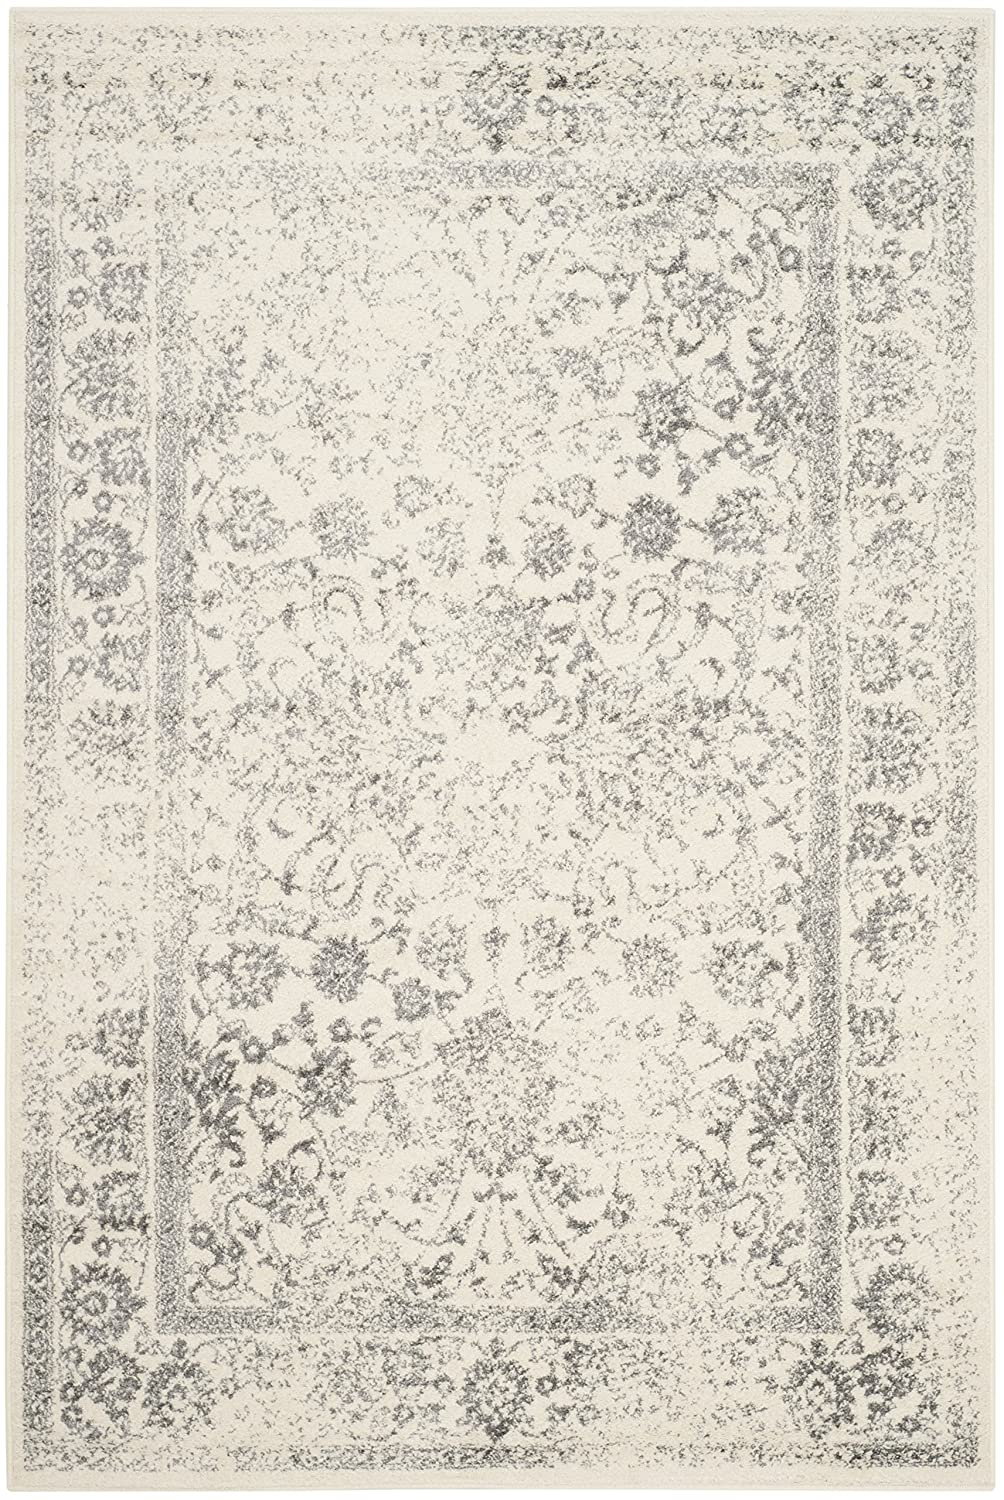 amazoncom safavieh adirondack collection adr109c ivory and silver oriental vintage distressed area rug 8u0027 x 10u0027 kitchen u0026 dining - Safavieh Rug